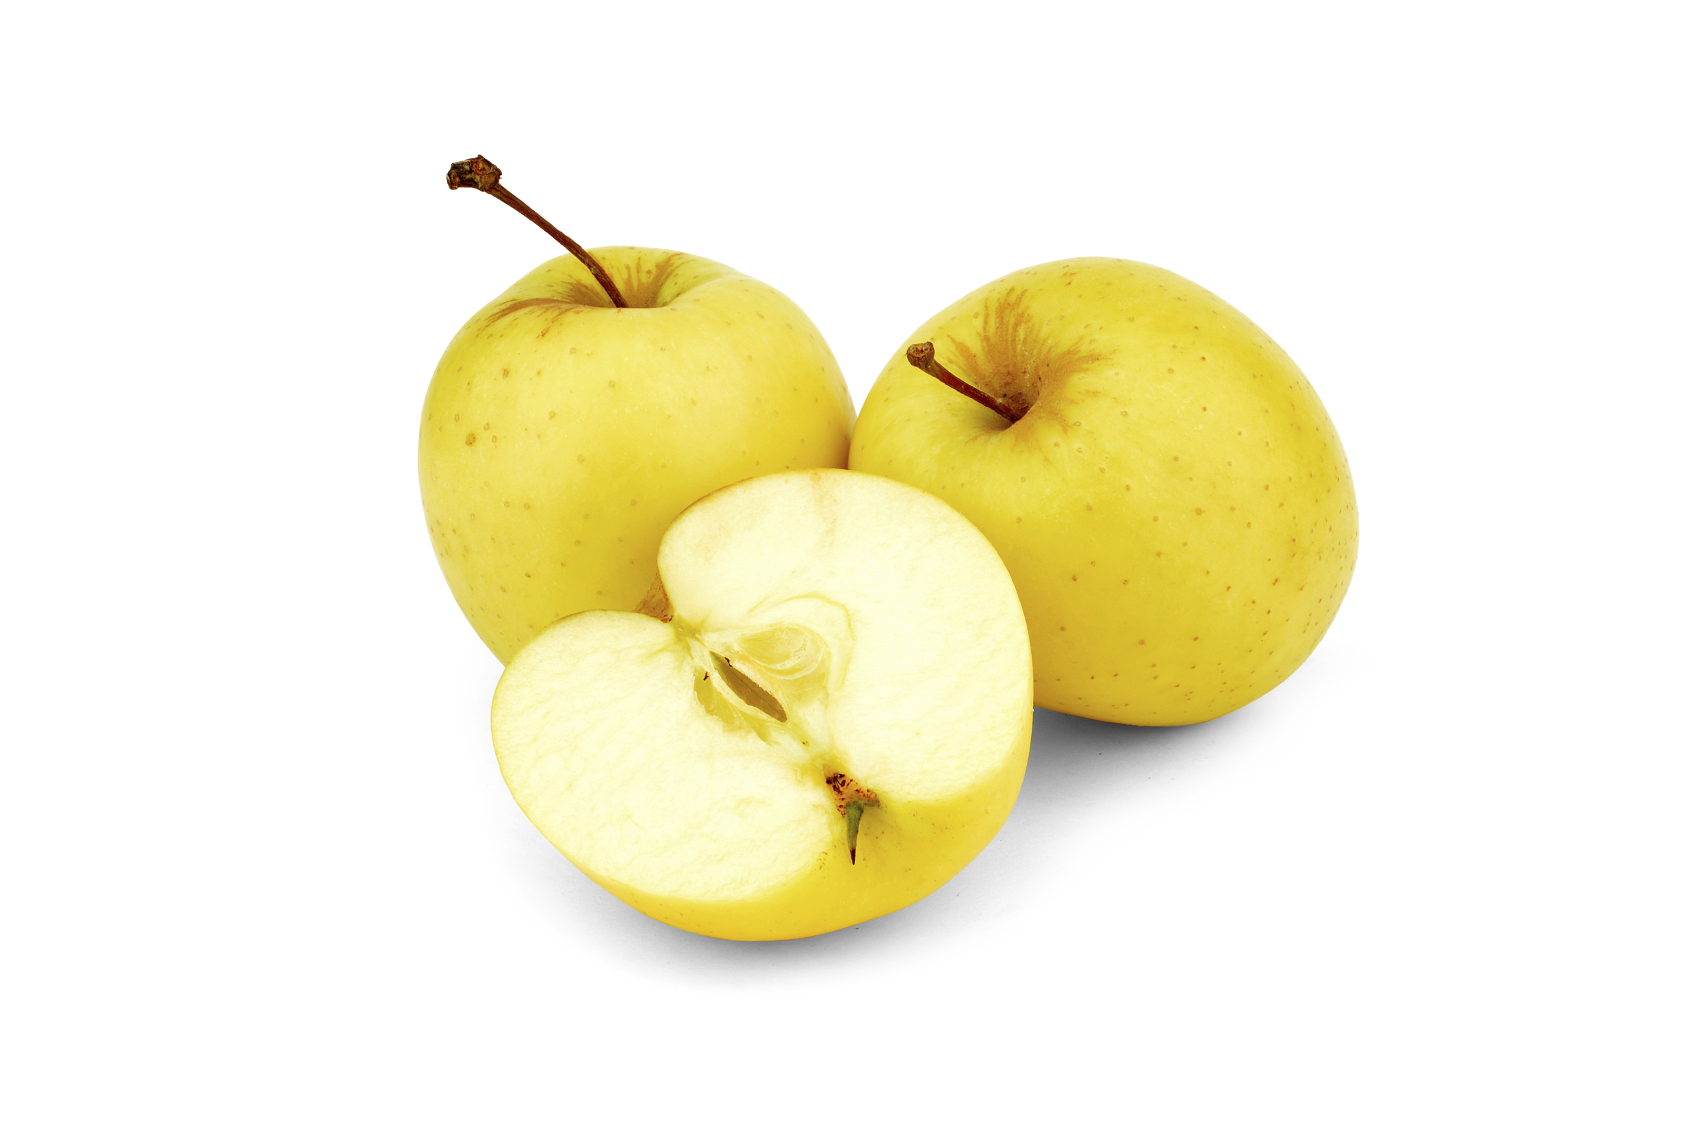 Apples, Golden Delicious